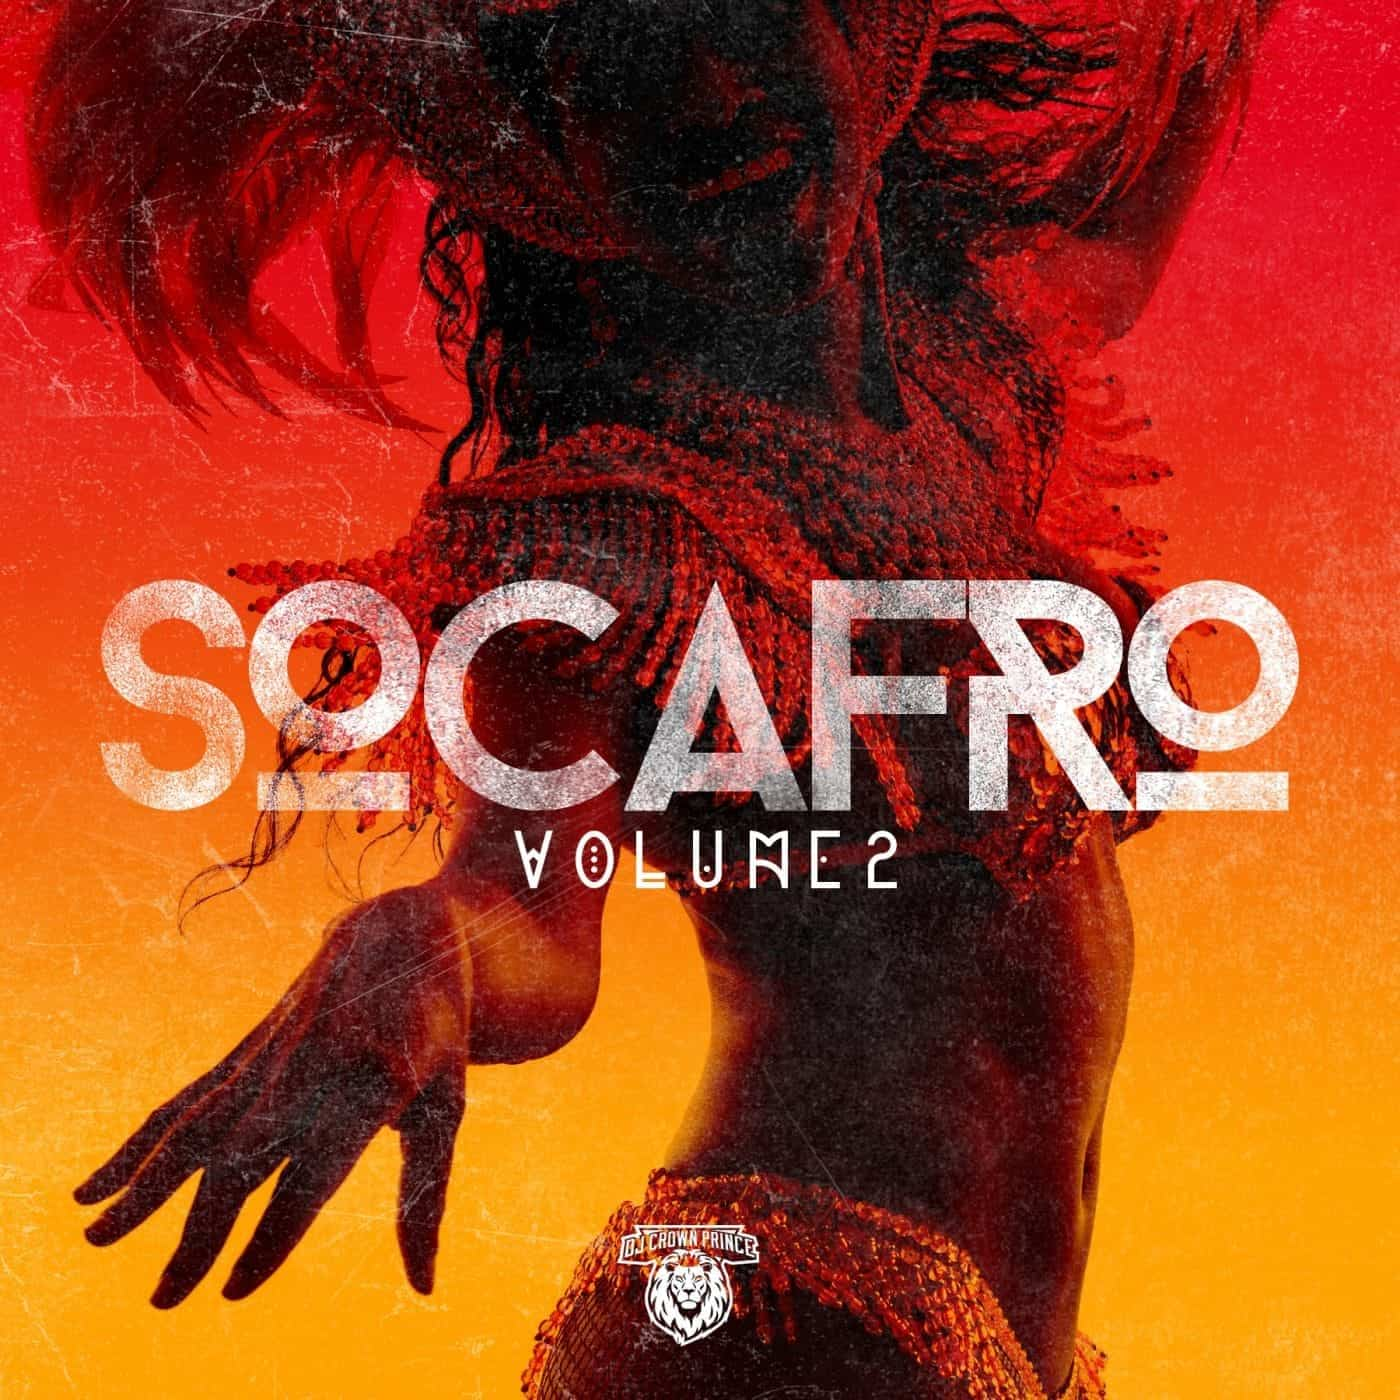 Dj Crown Prince - SOCAFRO VOL 2 - Best of Soca and Afrobeat